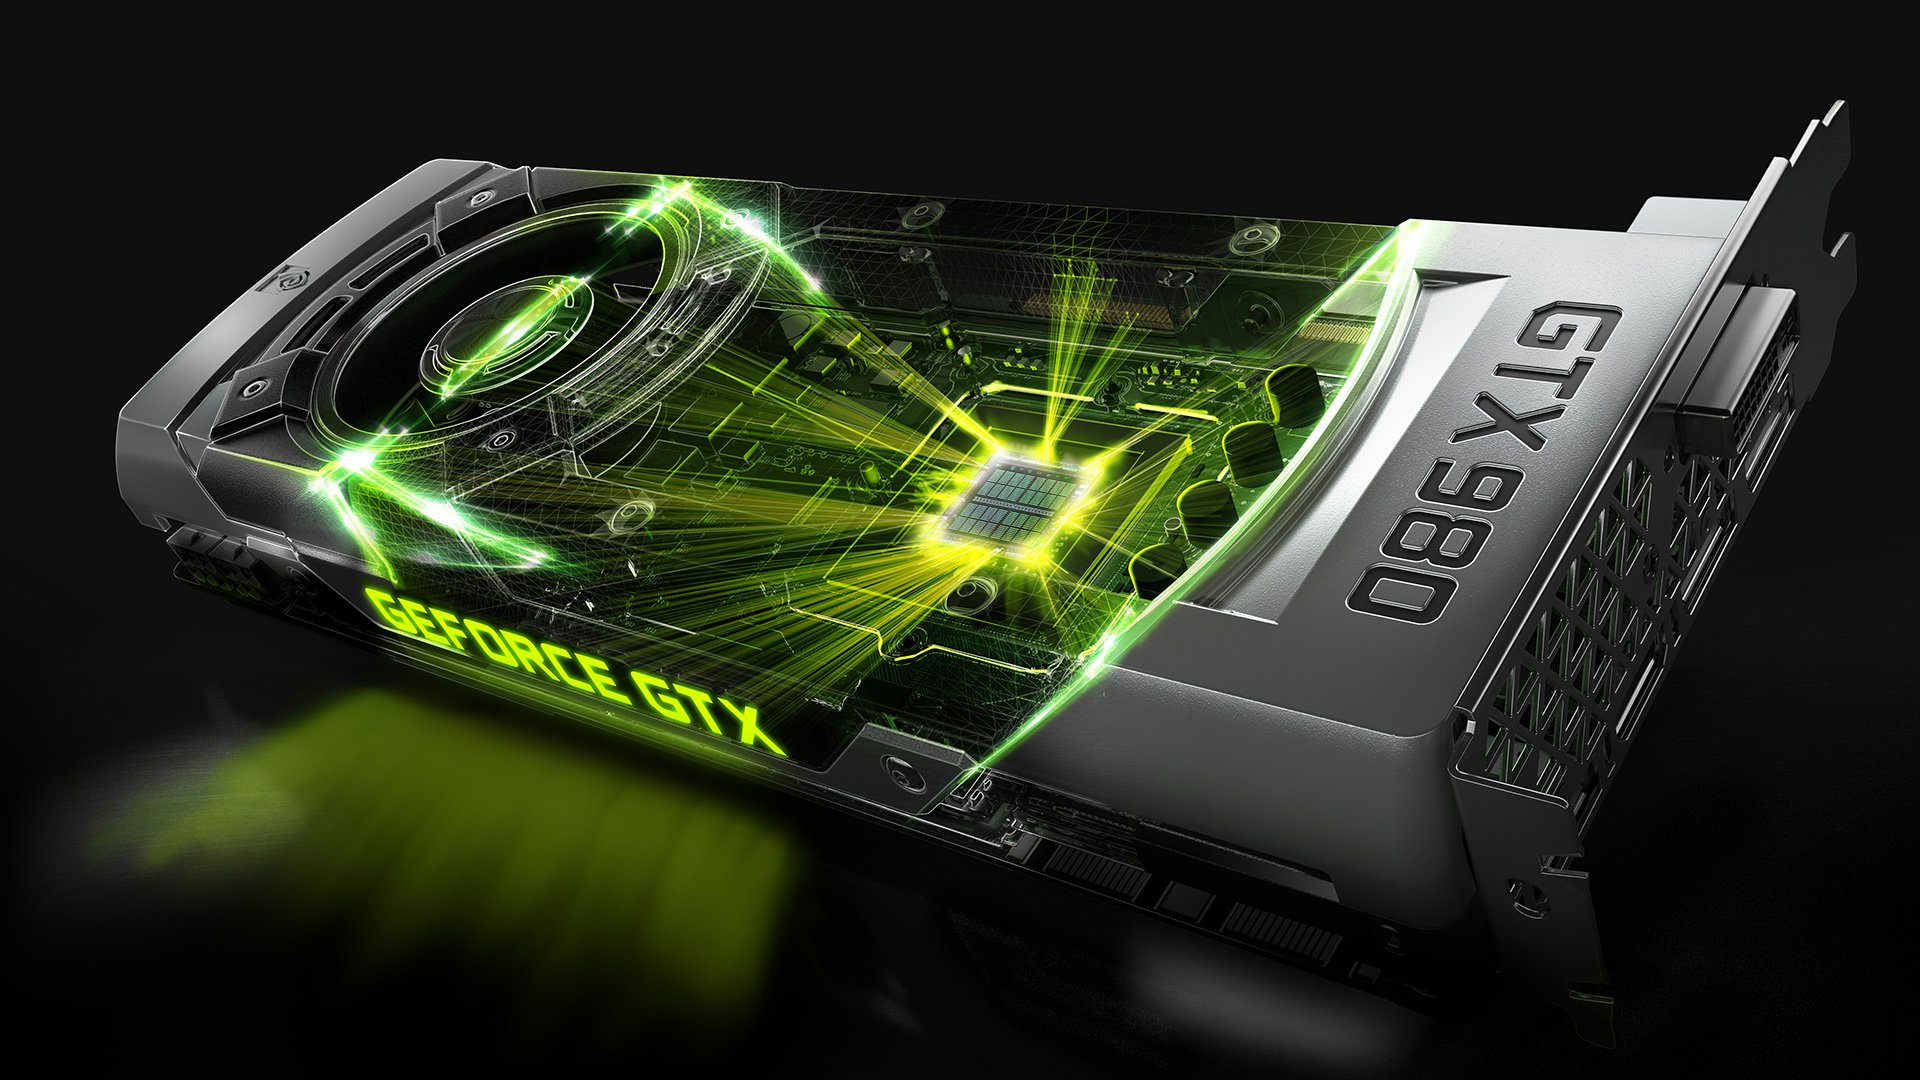 GeForce GTX 980 and GTX 970 to set new standards as world's most advanced GPUs